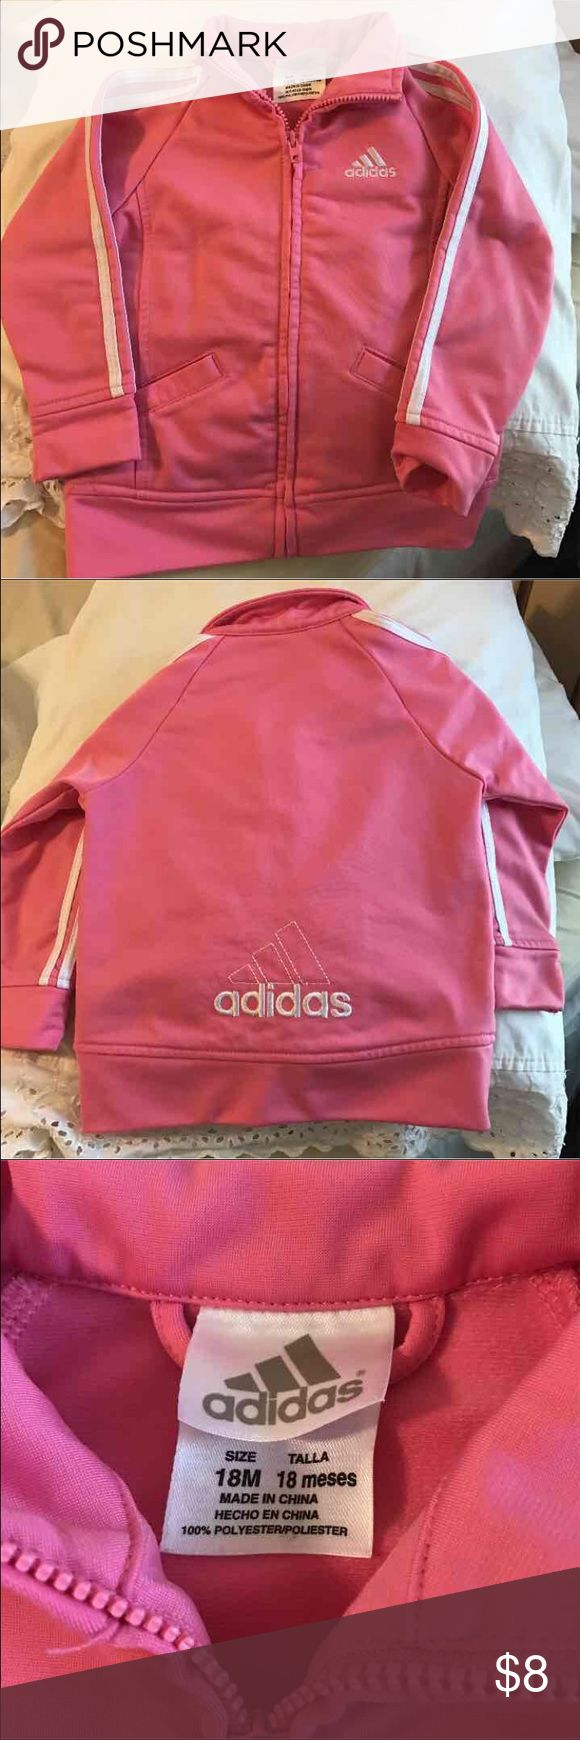 Infant Girls Adidas Jacket 18 months.  Clean, no stains or defects. Non-smoking home. Adidas Jackets & Coats